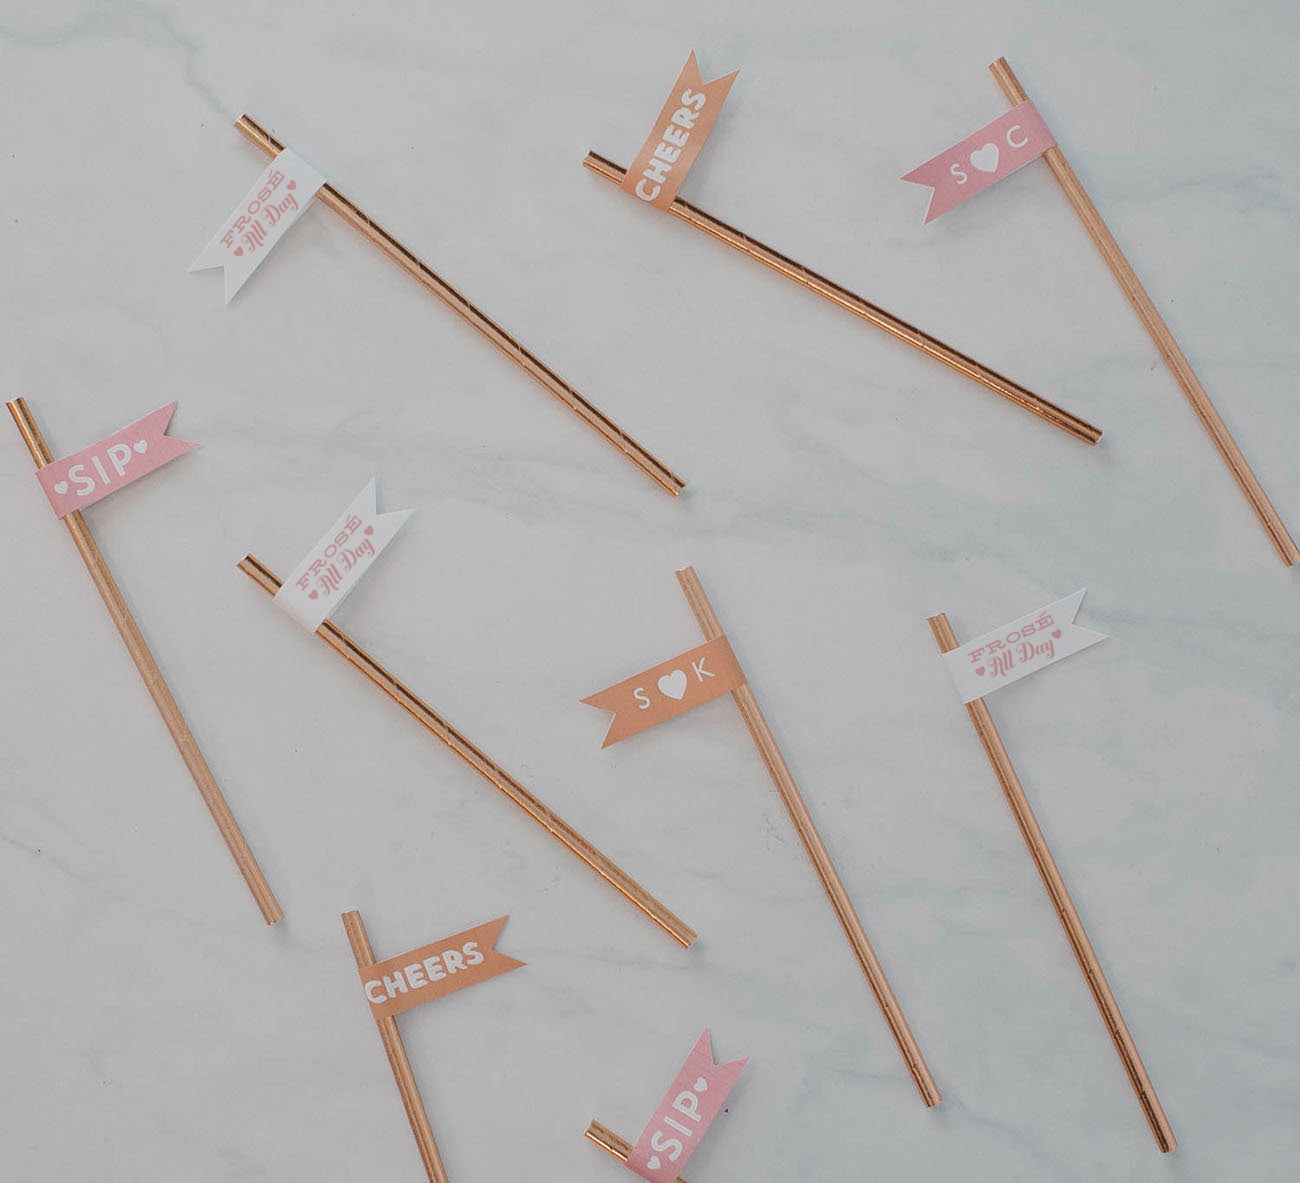 rose gold metallic straws with cheers flags